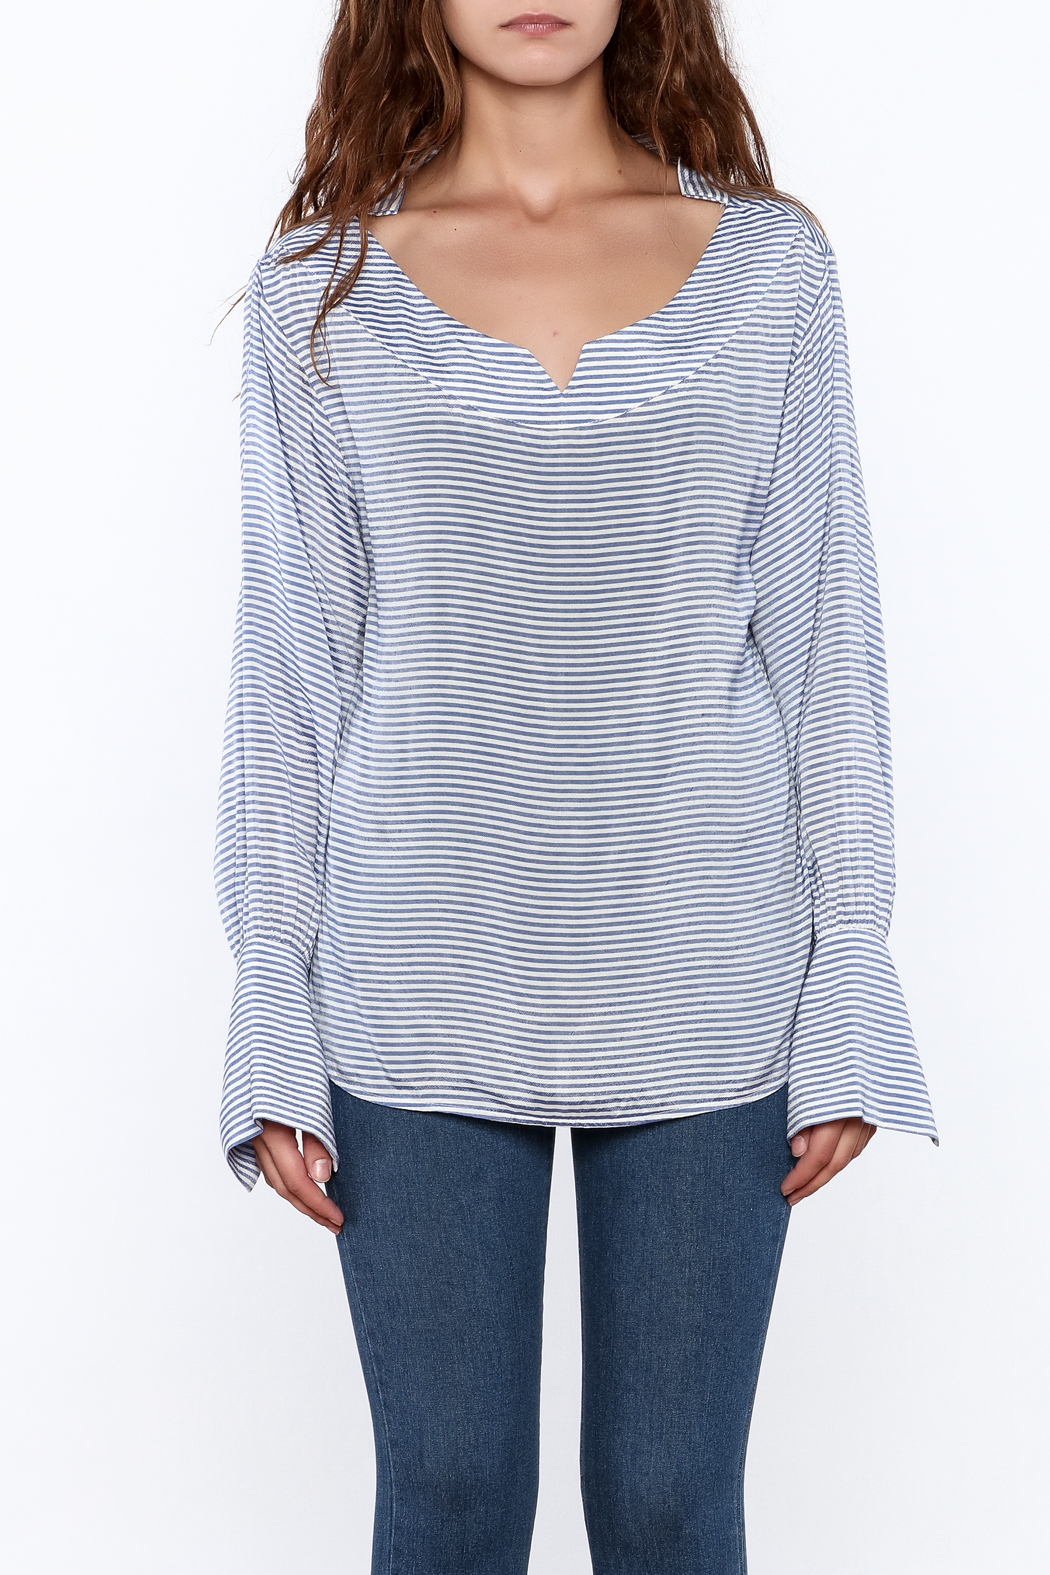 Pinkyotto Preppy Striped Pullover Top - Front Full Image